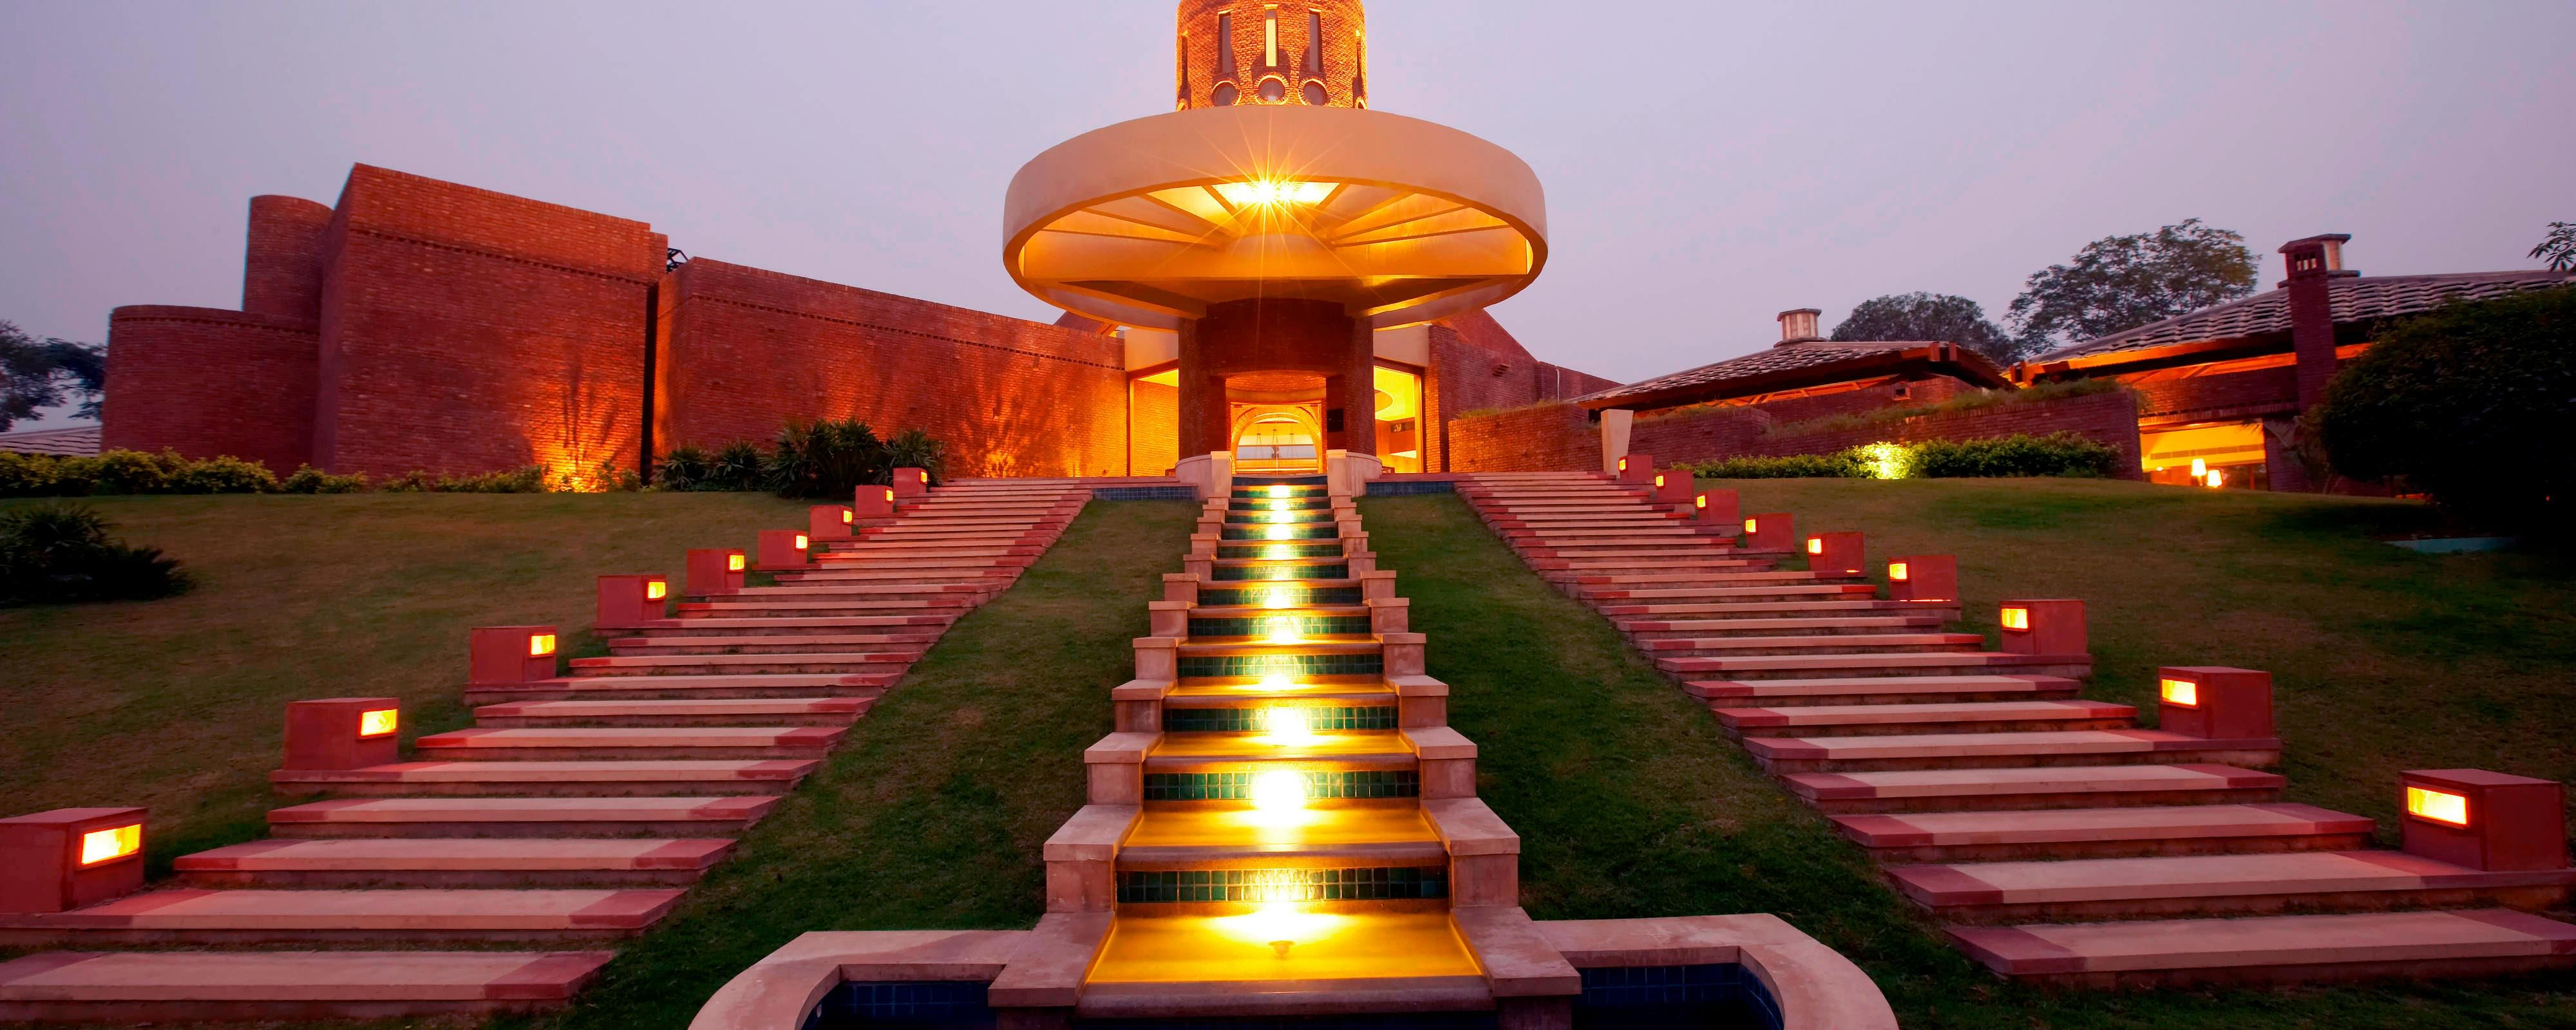 The Westin Sohna Resort Amp Spa Sohna Gurgaon Spg